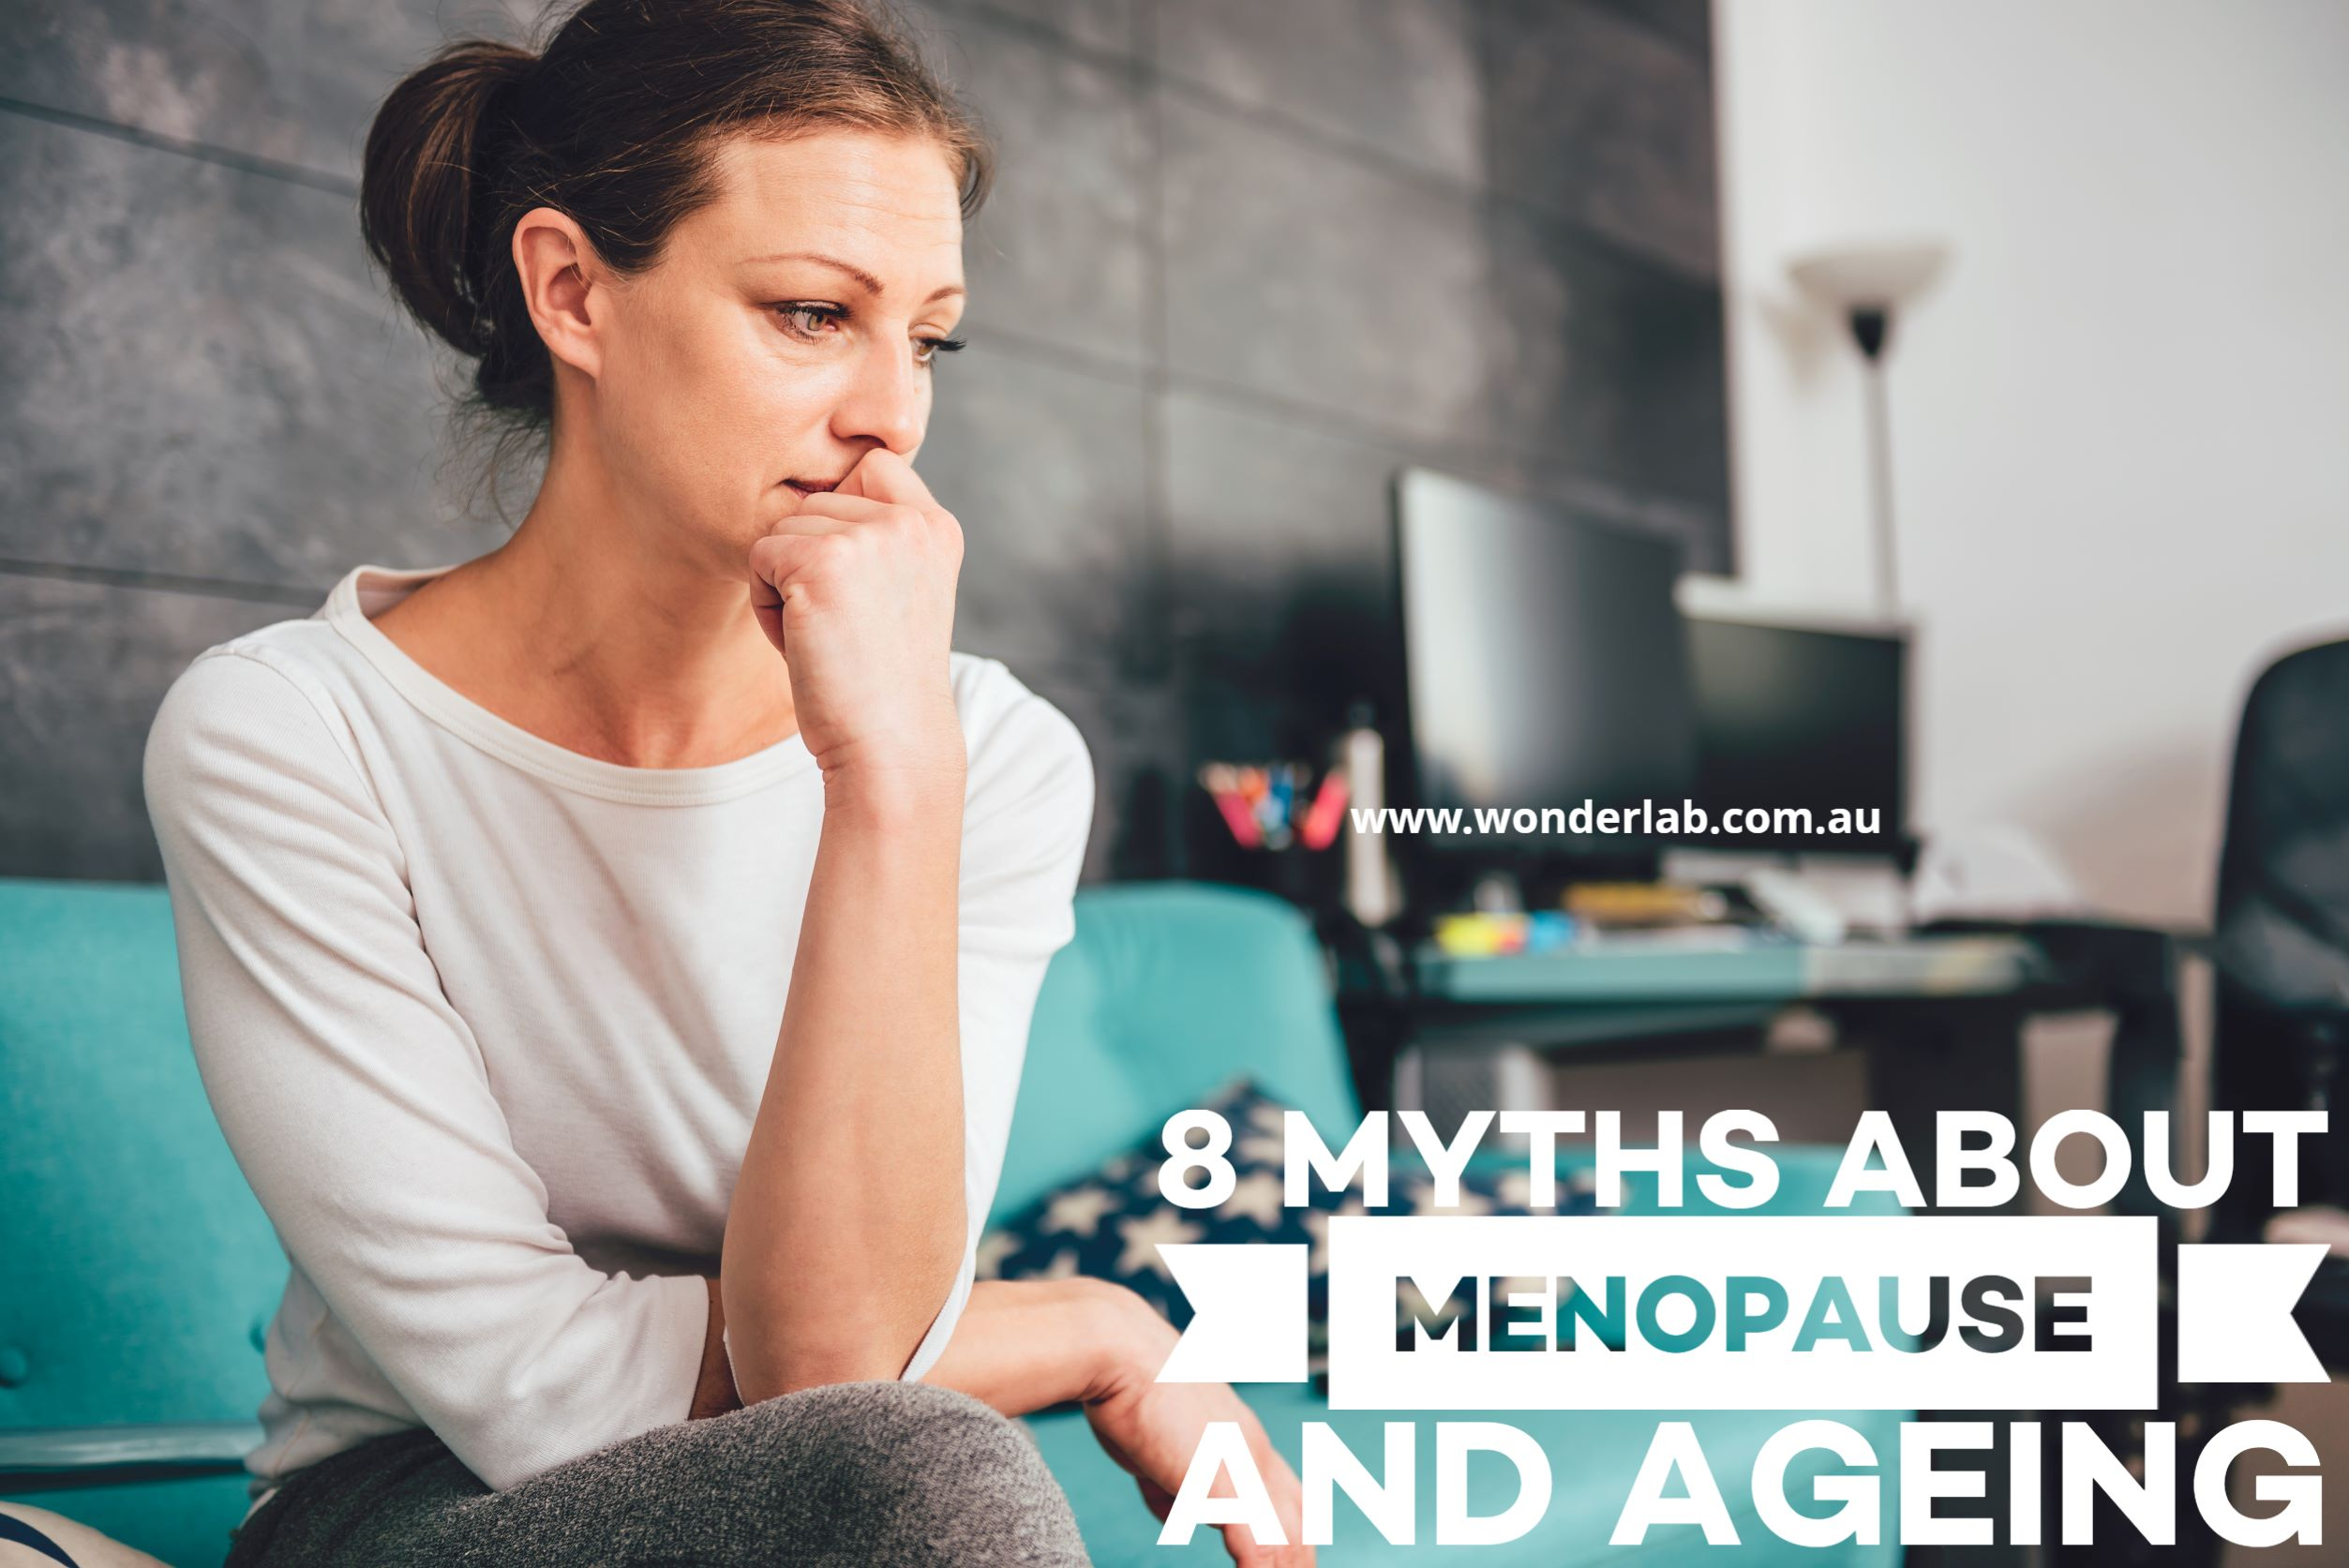 8 Myths about Menopause and Ageing